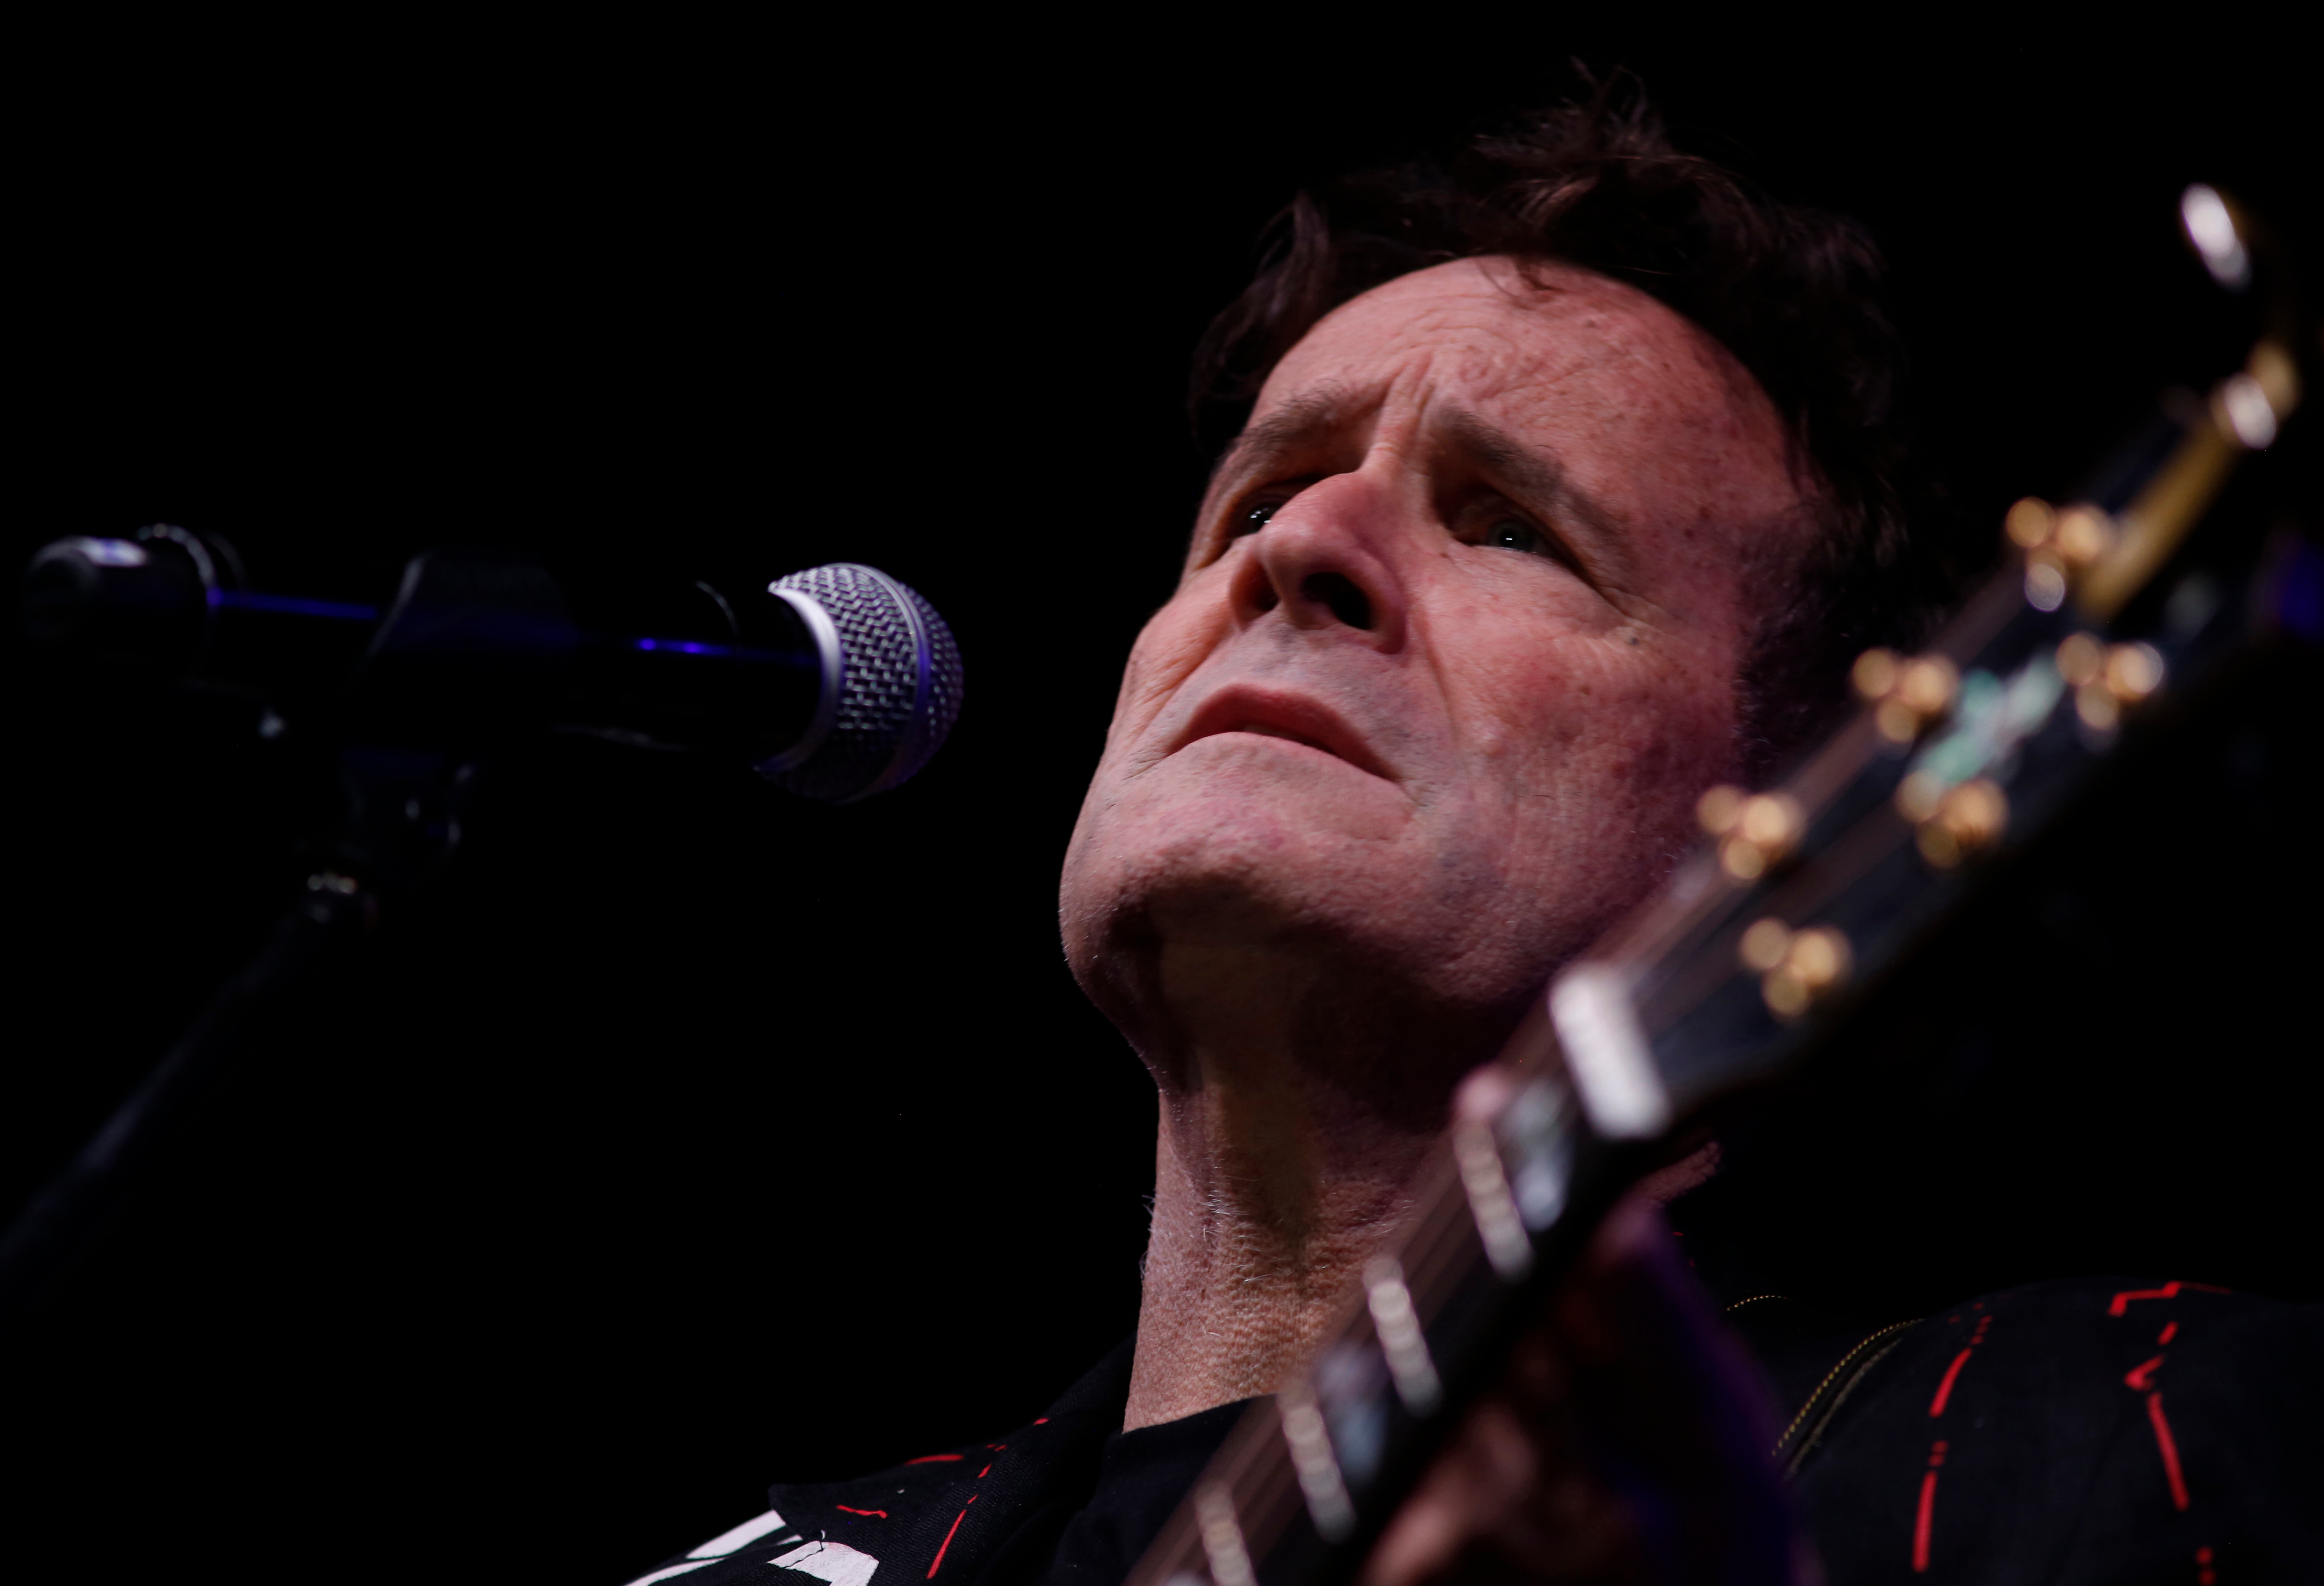 Johnny Clegg, Anti-Apartheid Musician in South Africa, Dead at 66